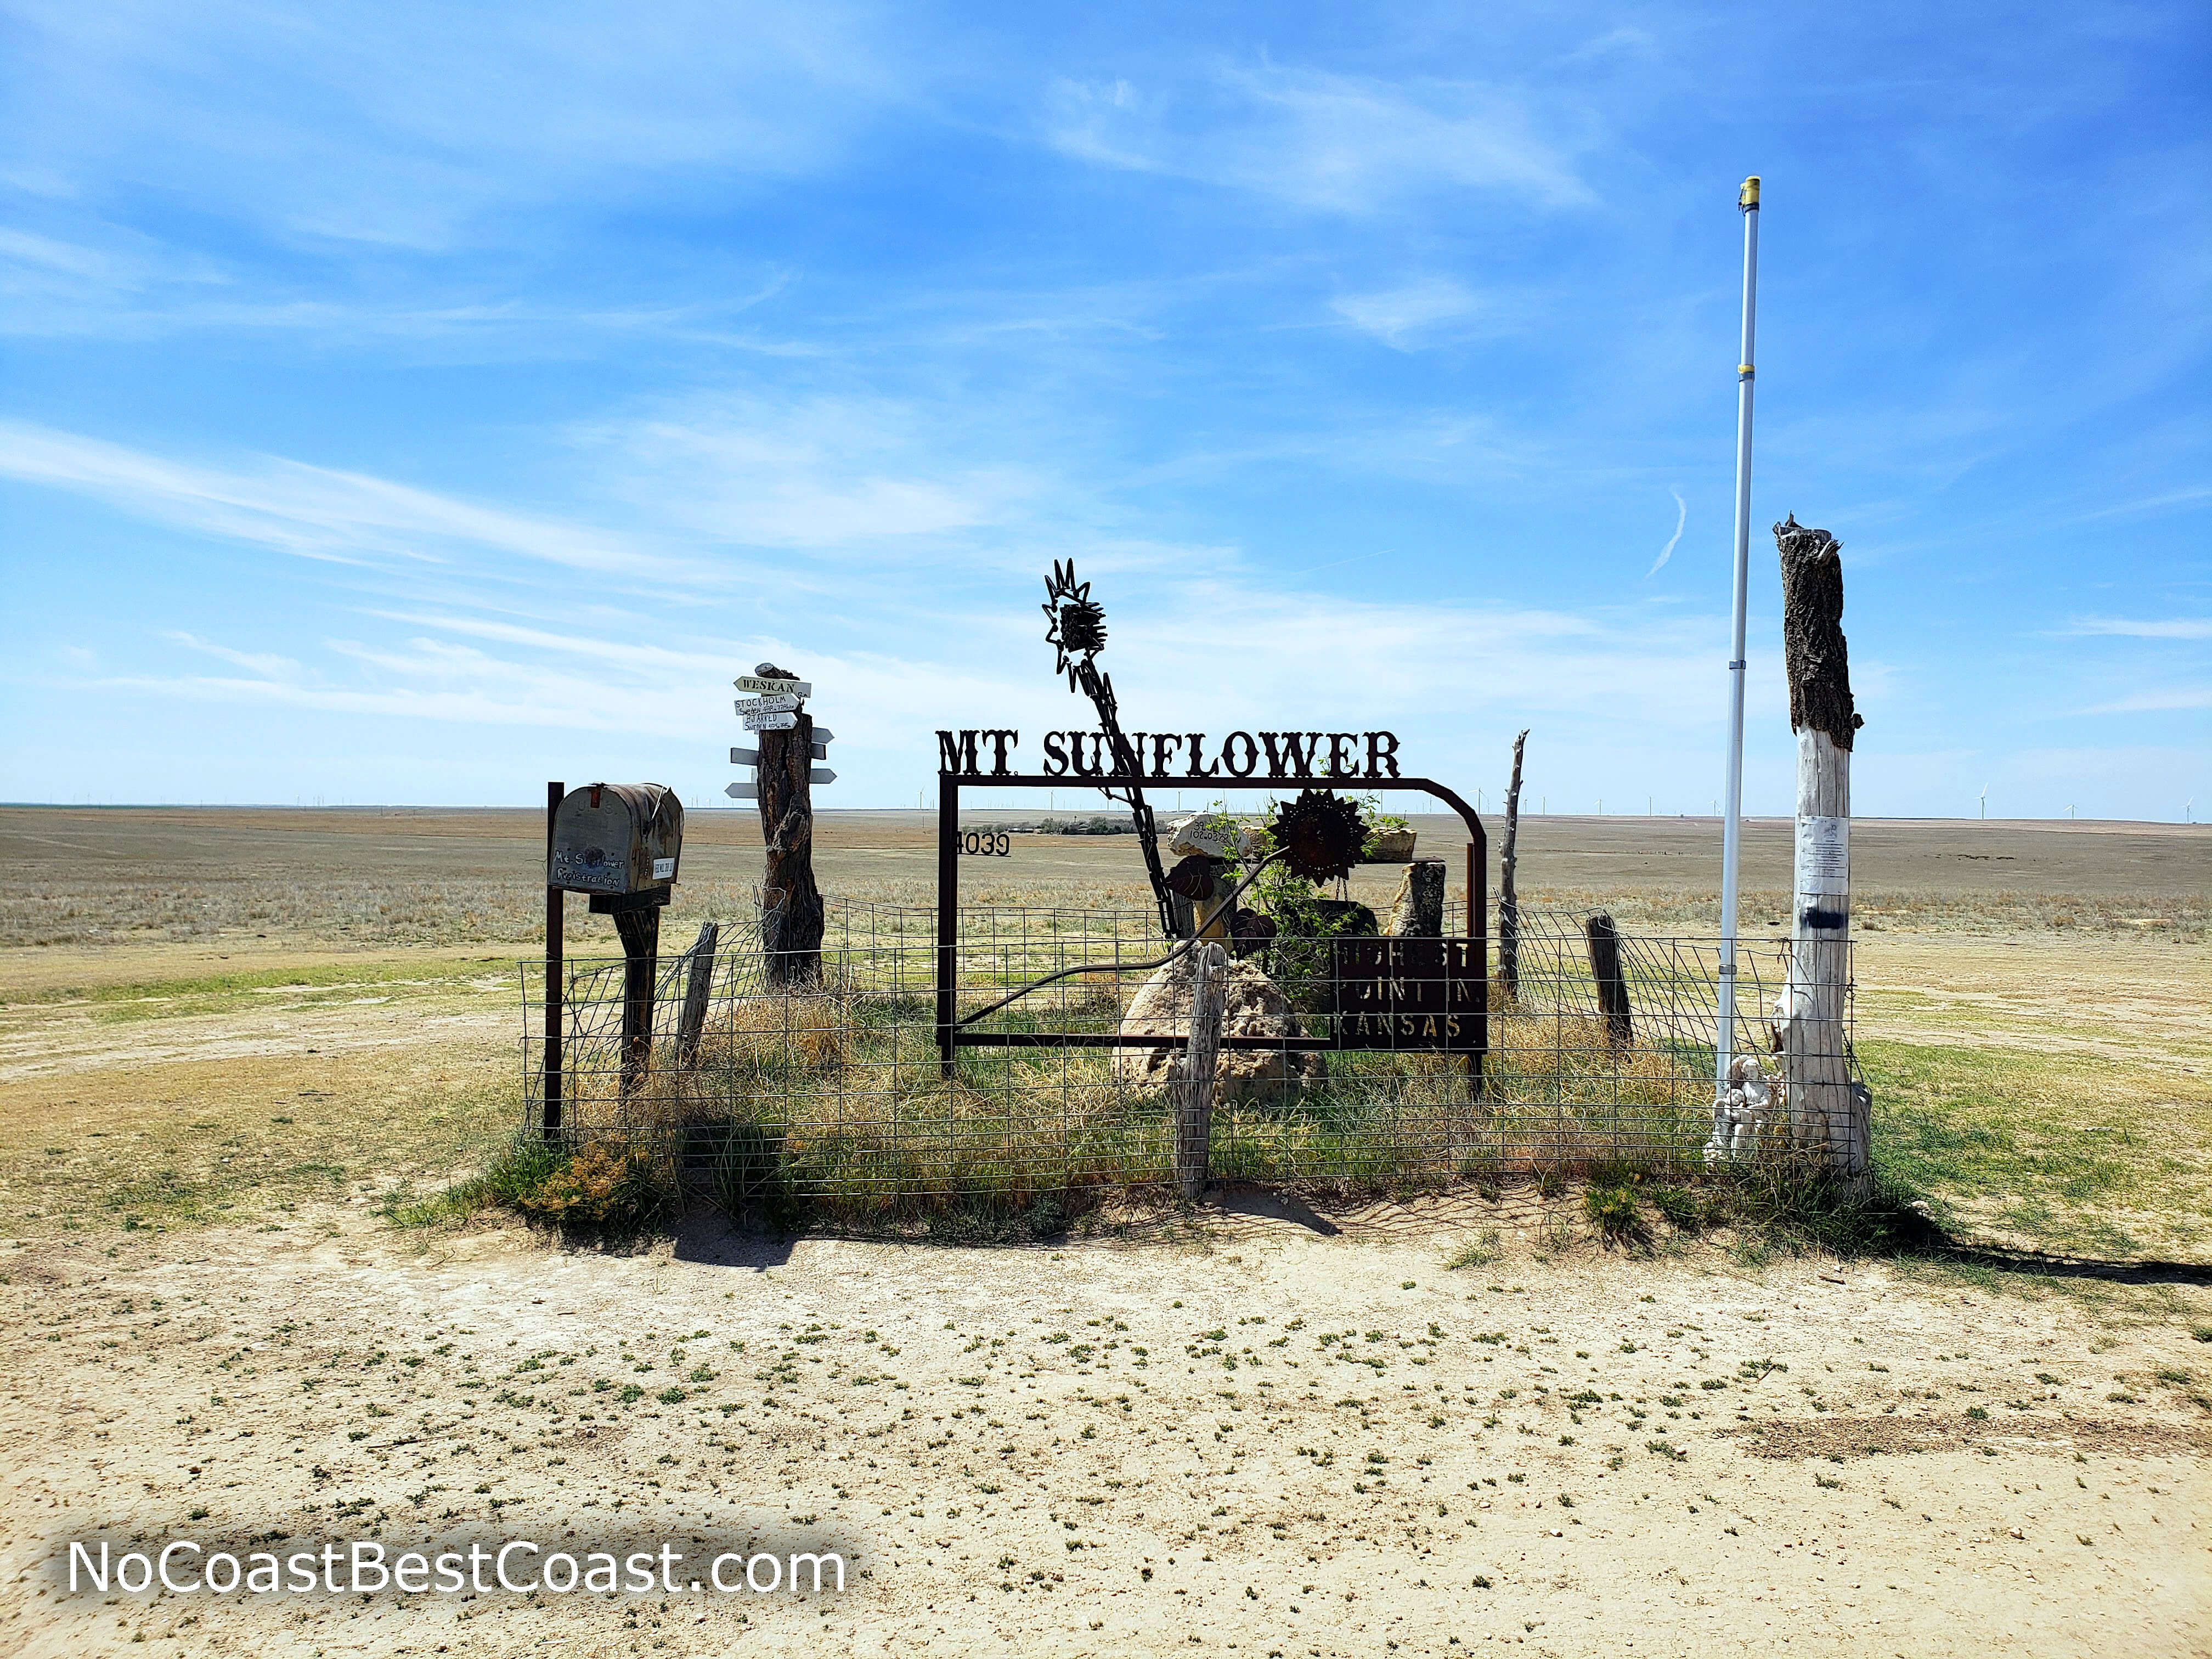 Mount Sunflower's summit monument